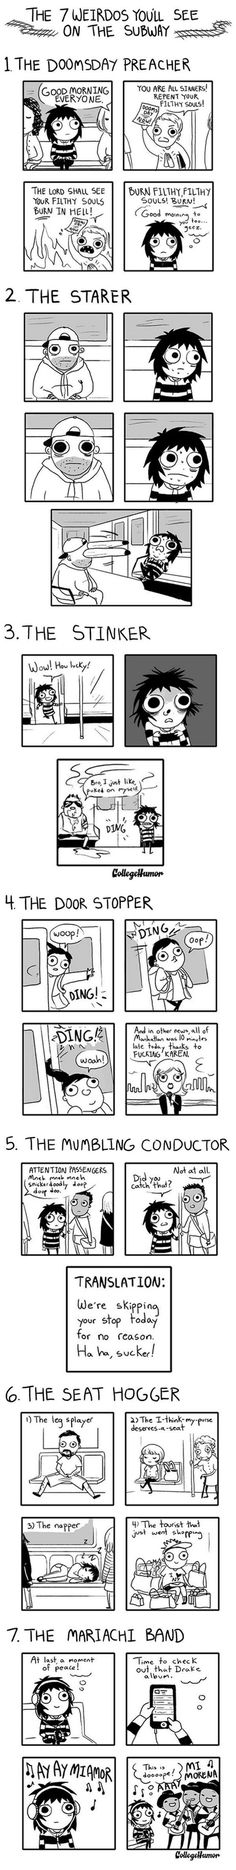 7 Weirdos You'll See on Public Transportation. Comic. Sarah Anderson. Funny.